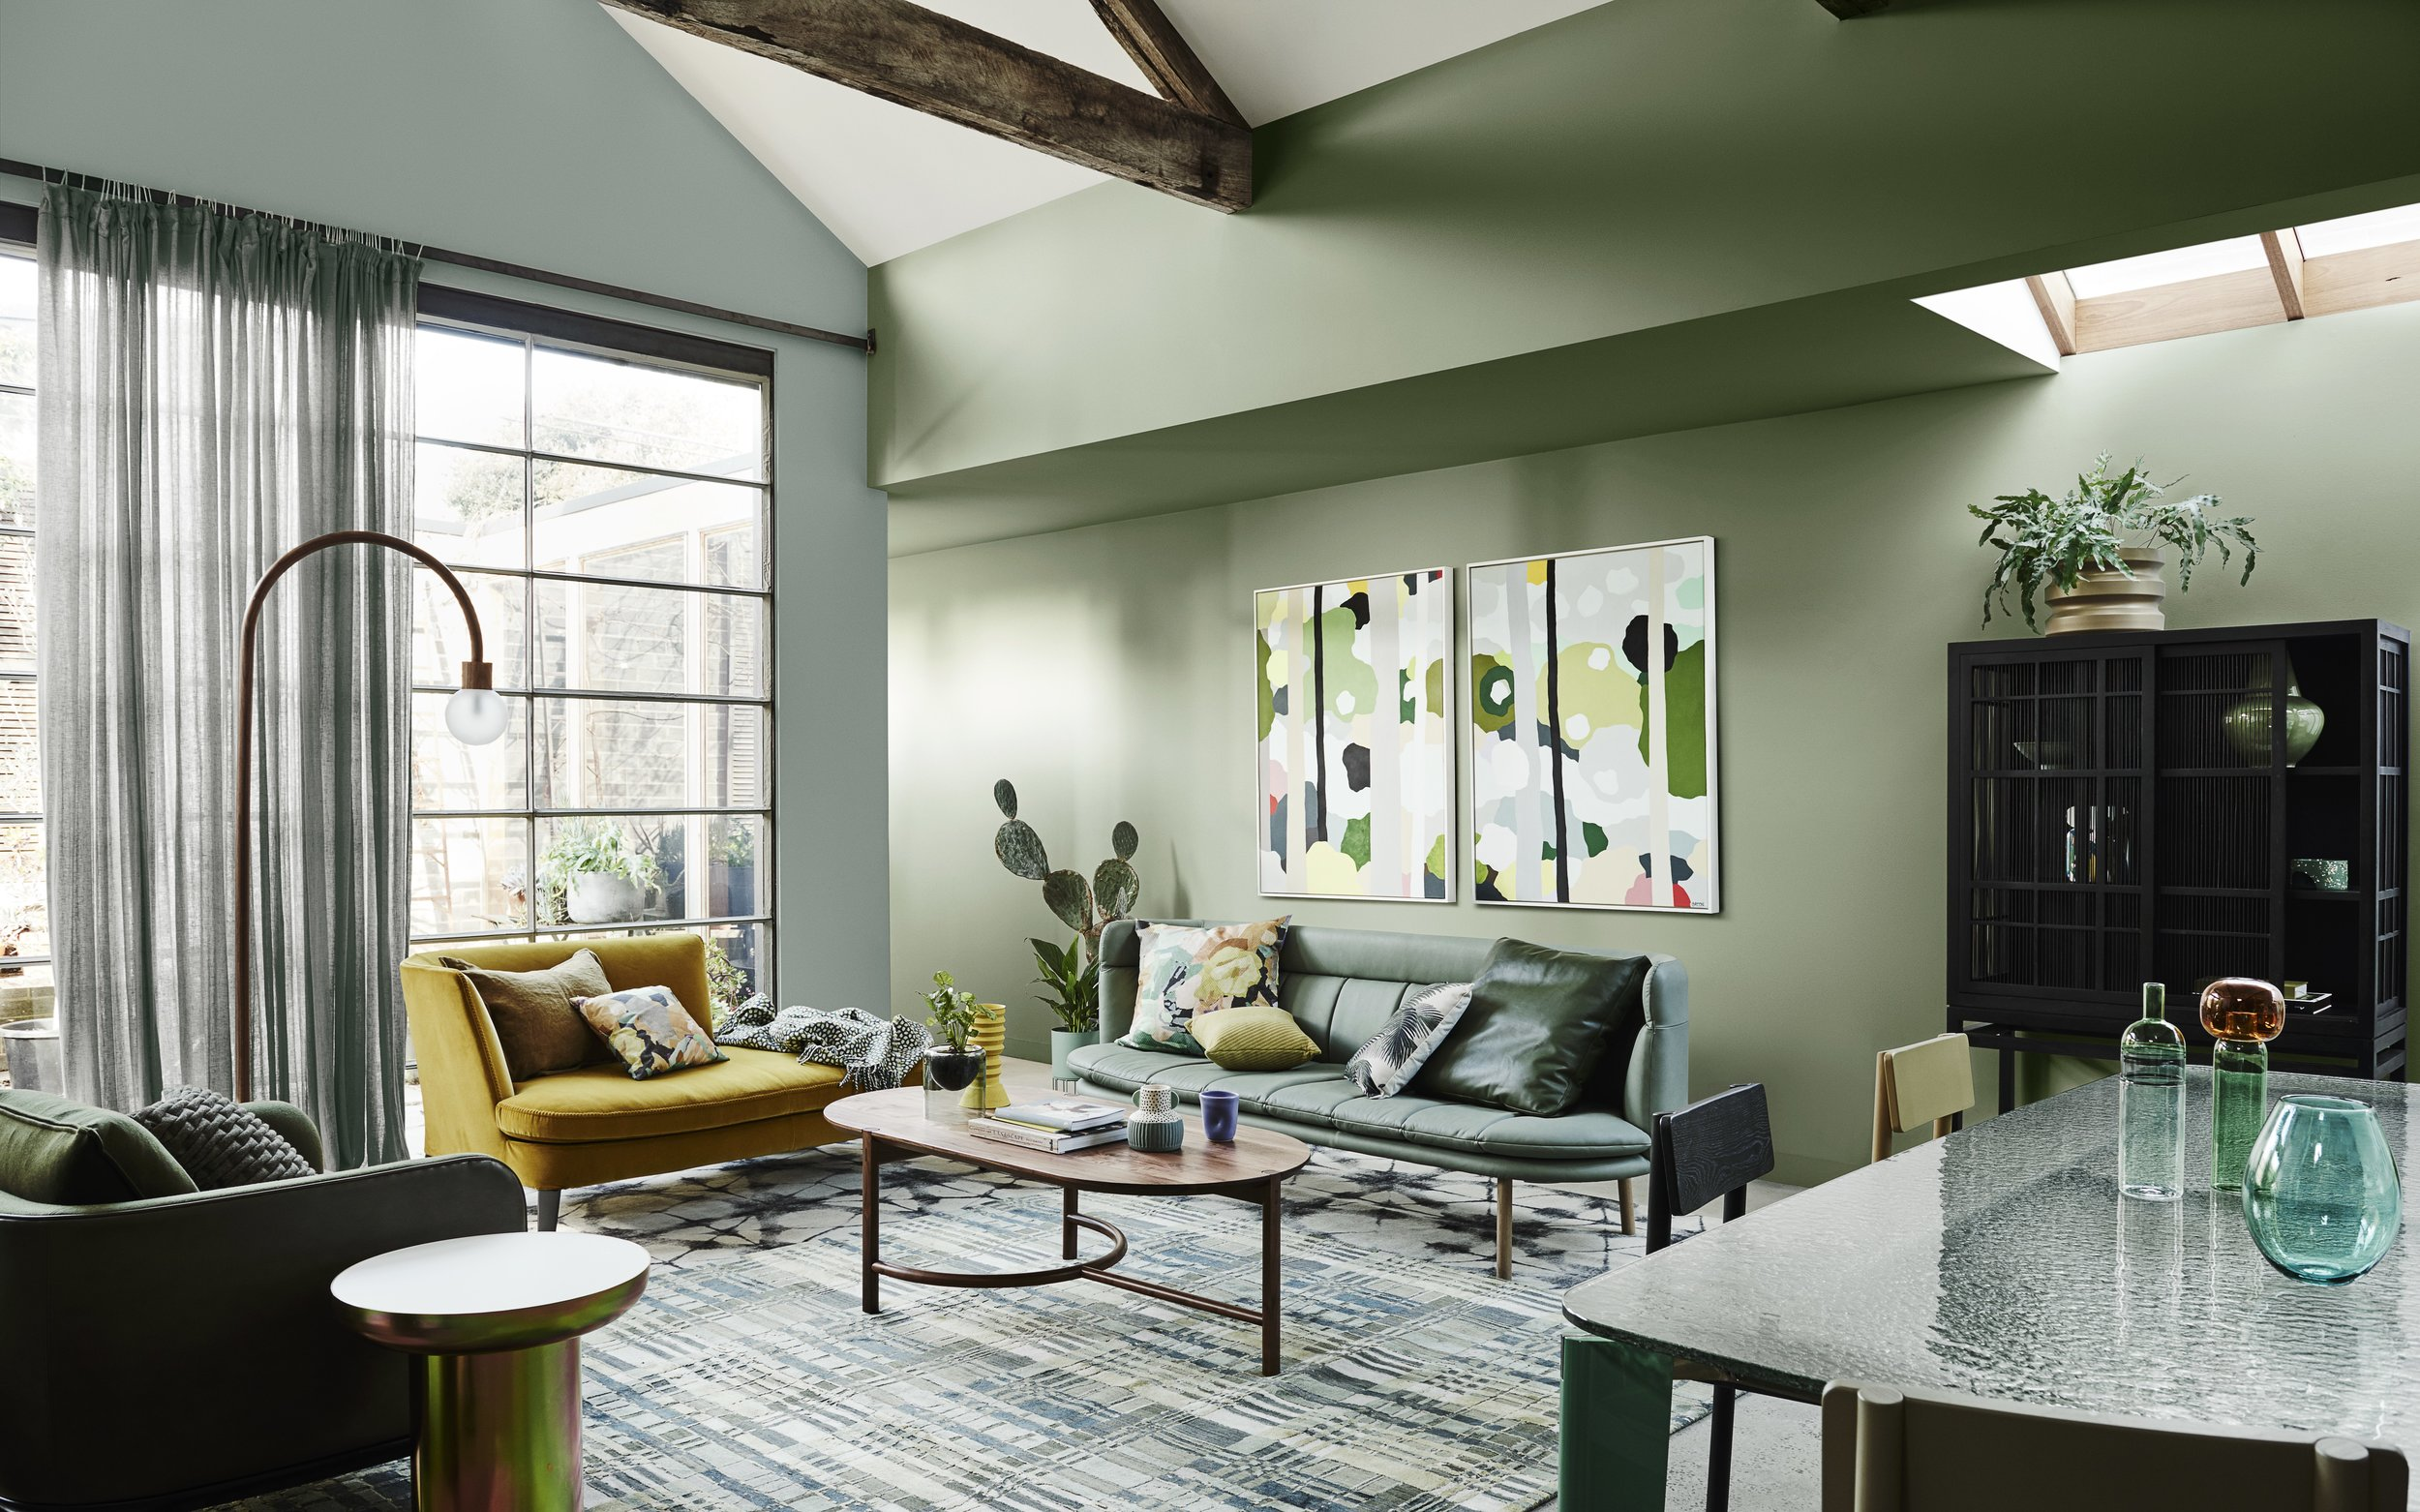 Dulux Colour Forecast 2020 – Cultivate palette. Wall in Dulux Pencarrow and Te Aroha.